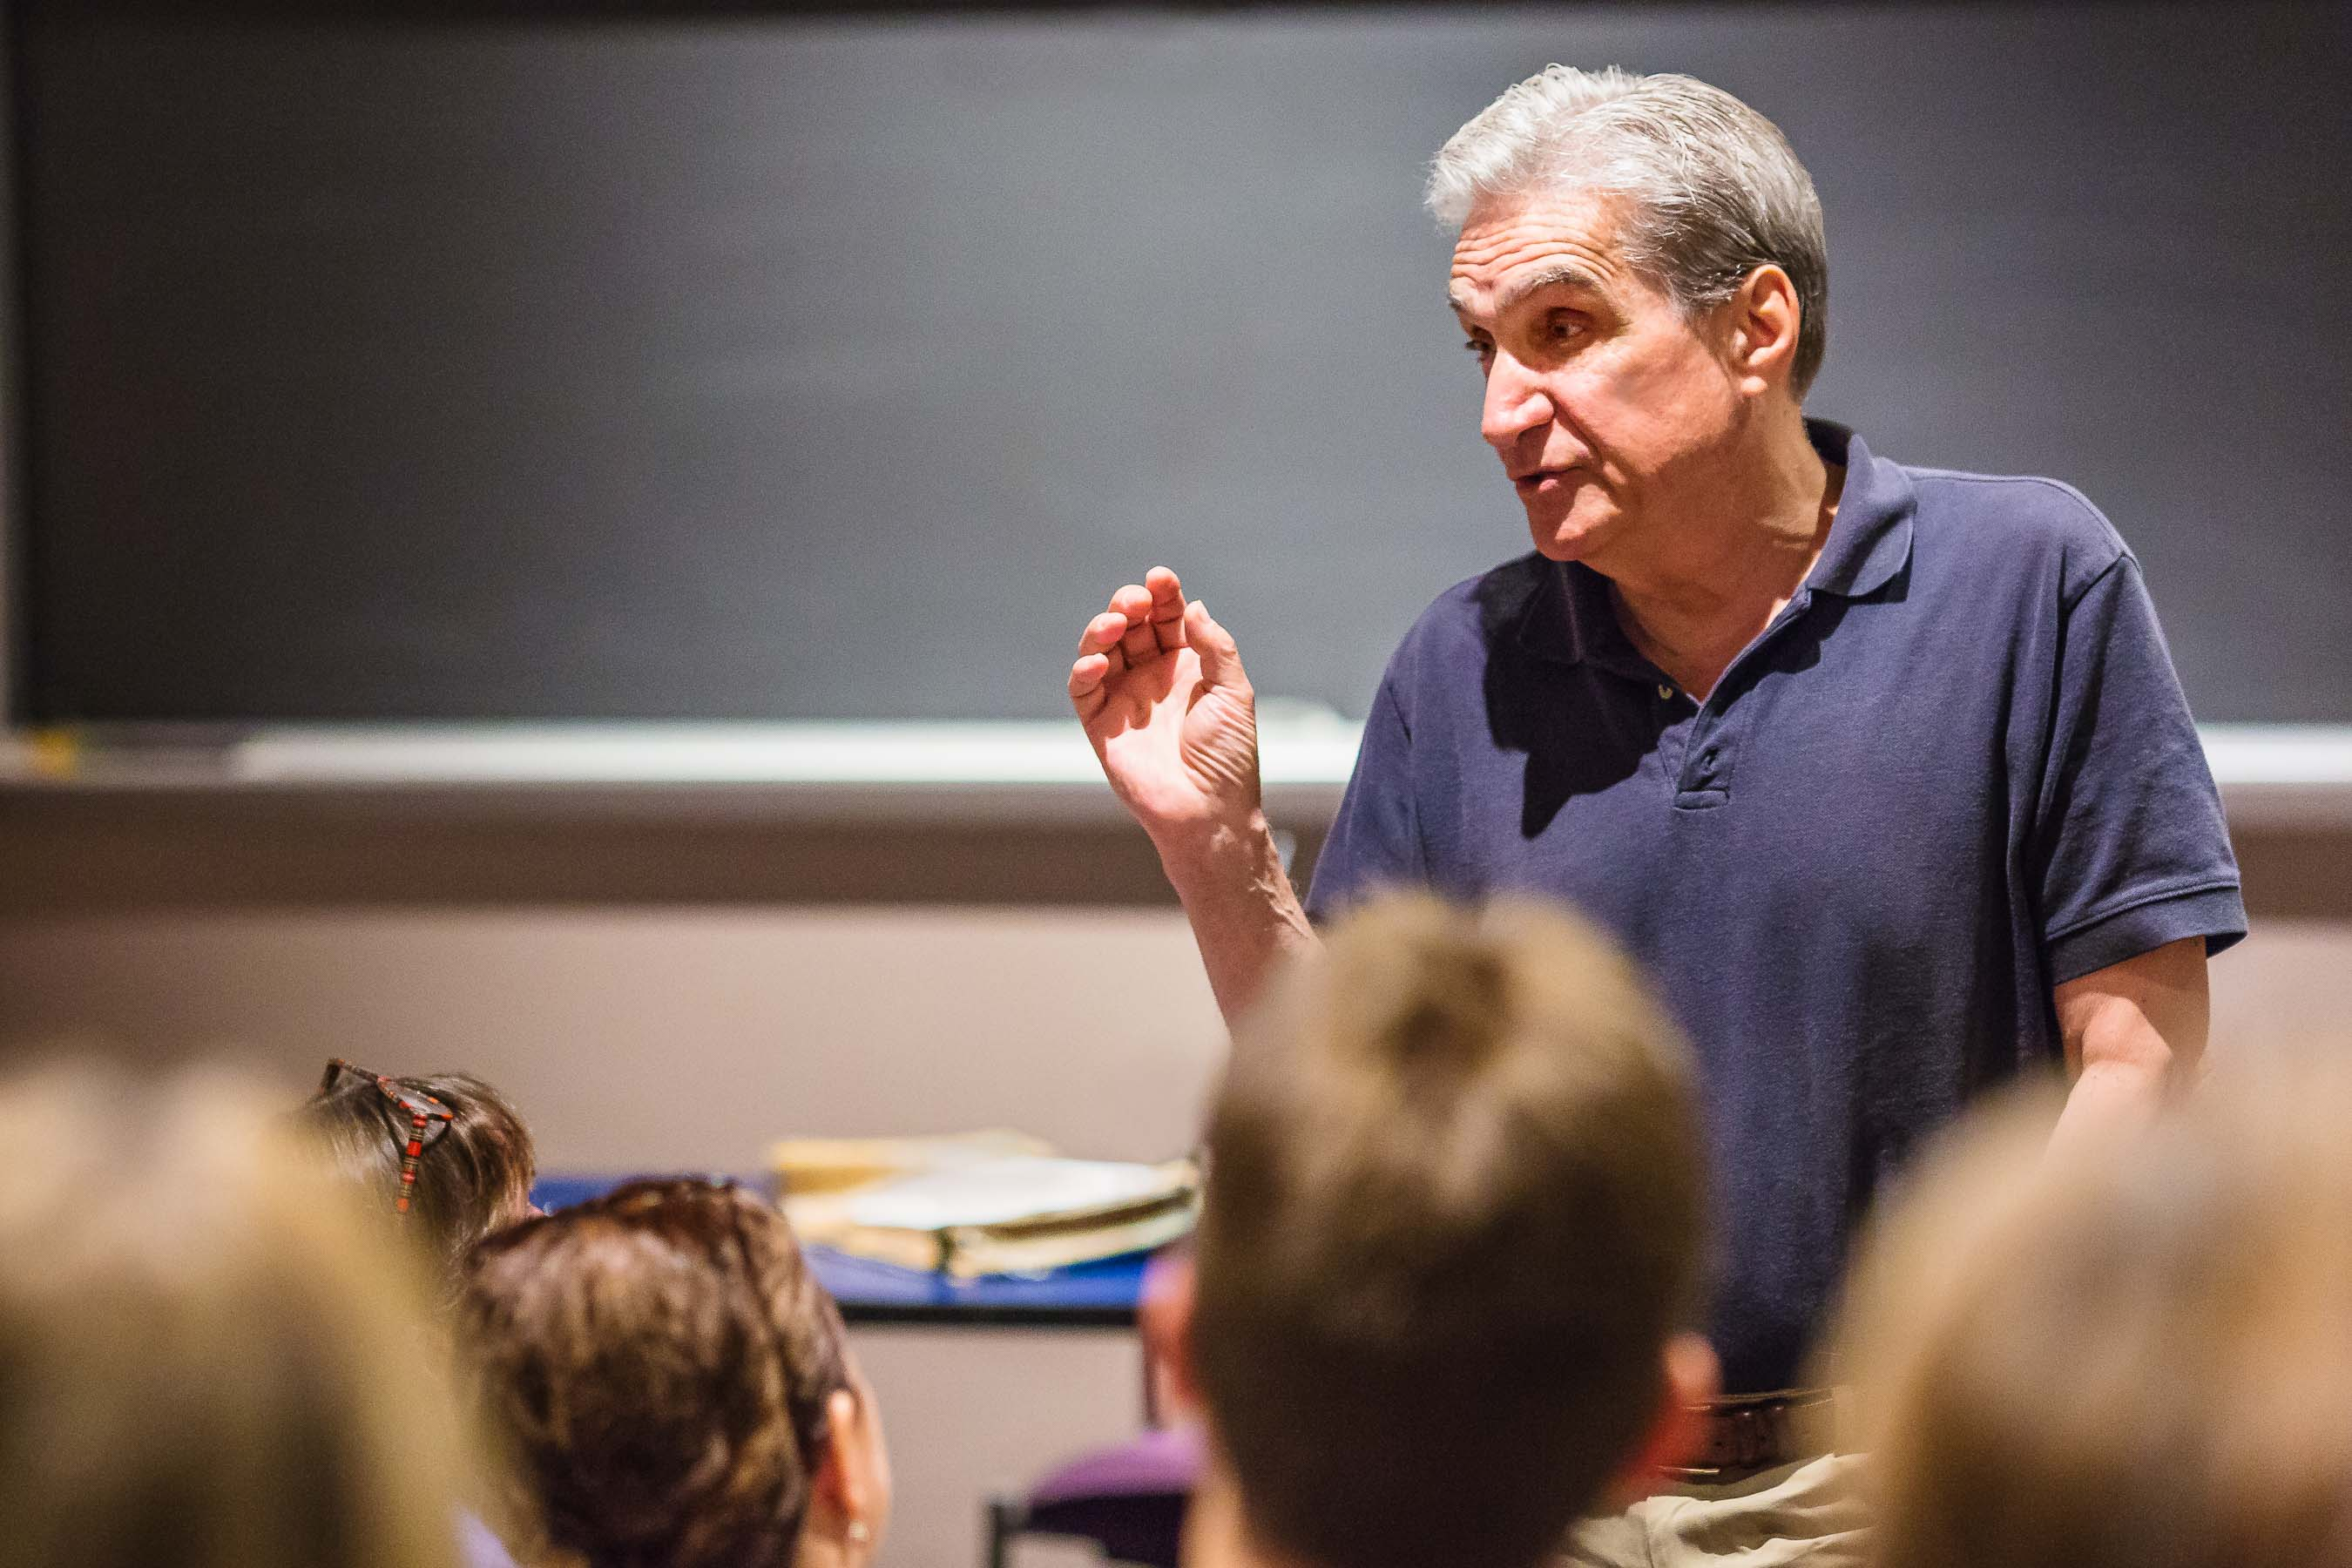 Robert Pinsky, American Poet, teaching at Boston University